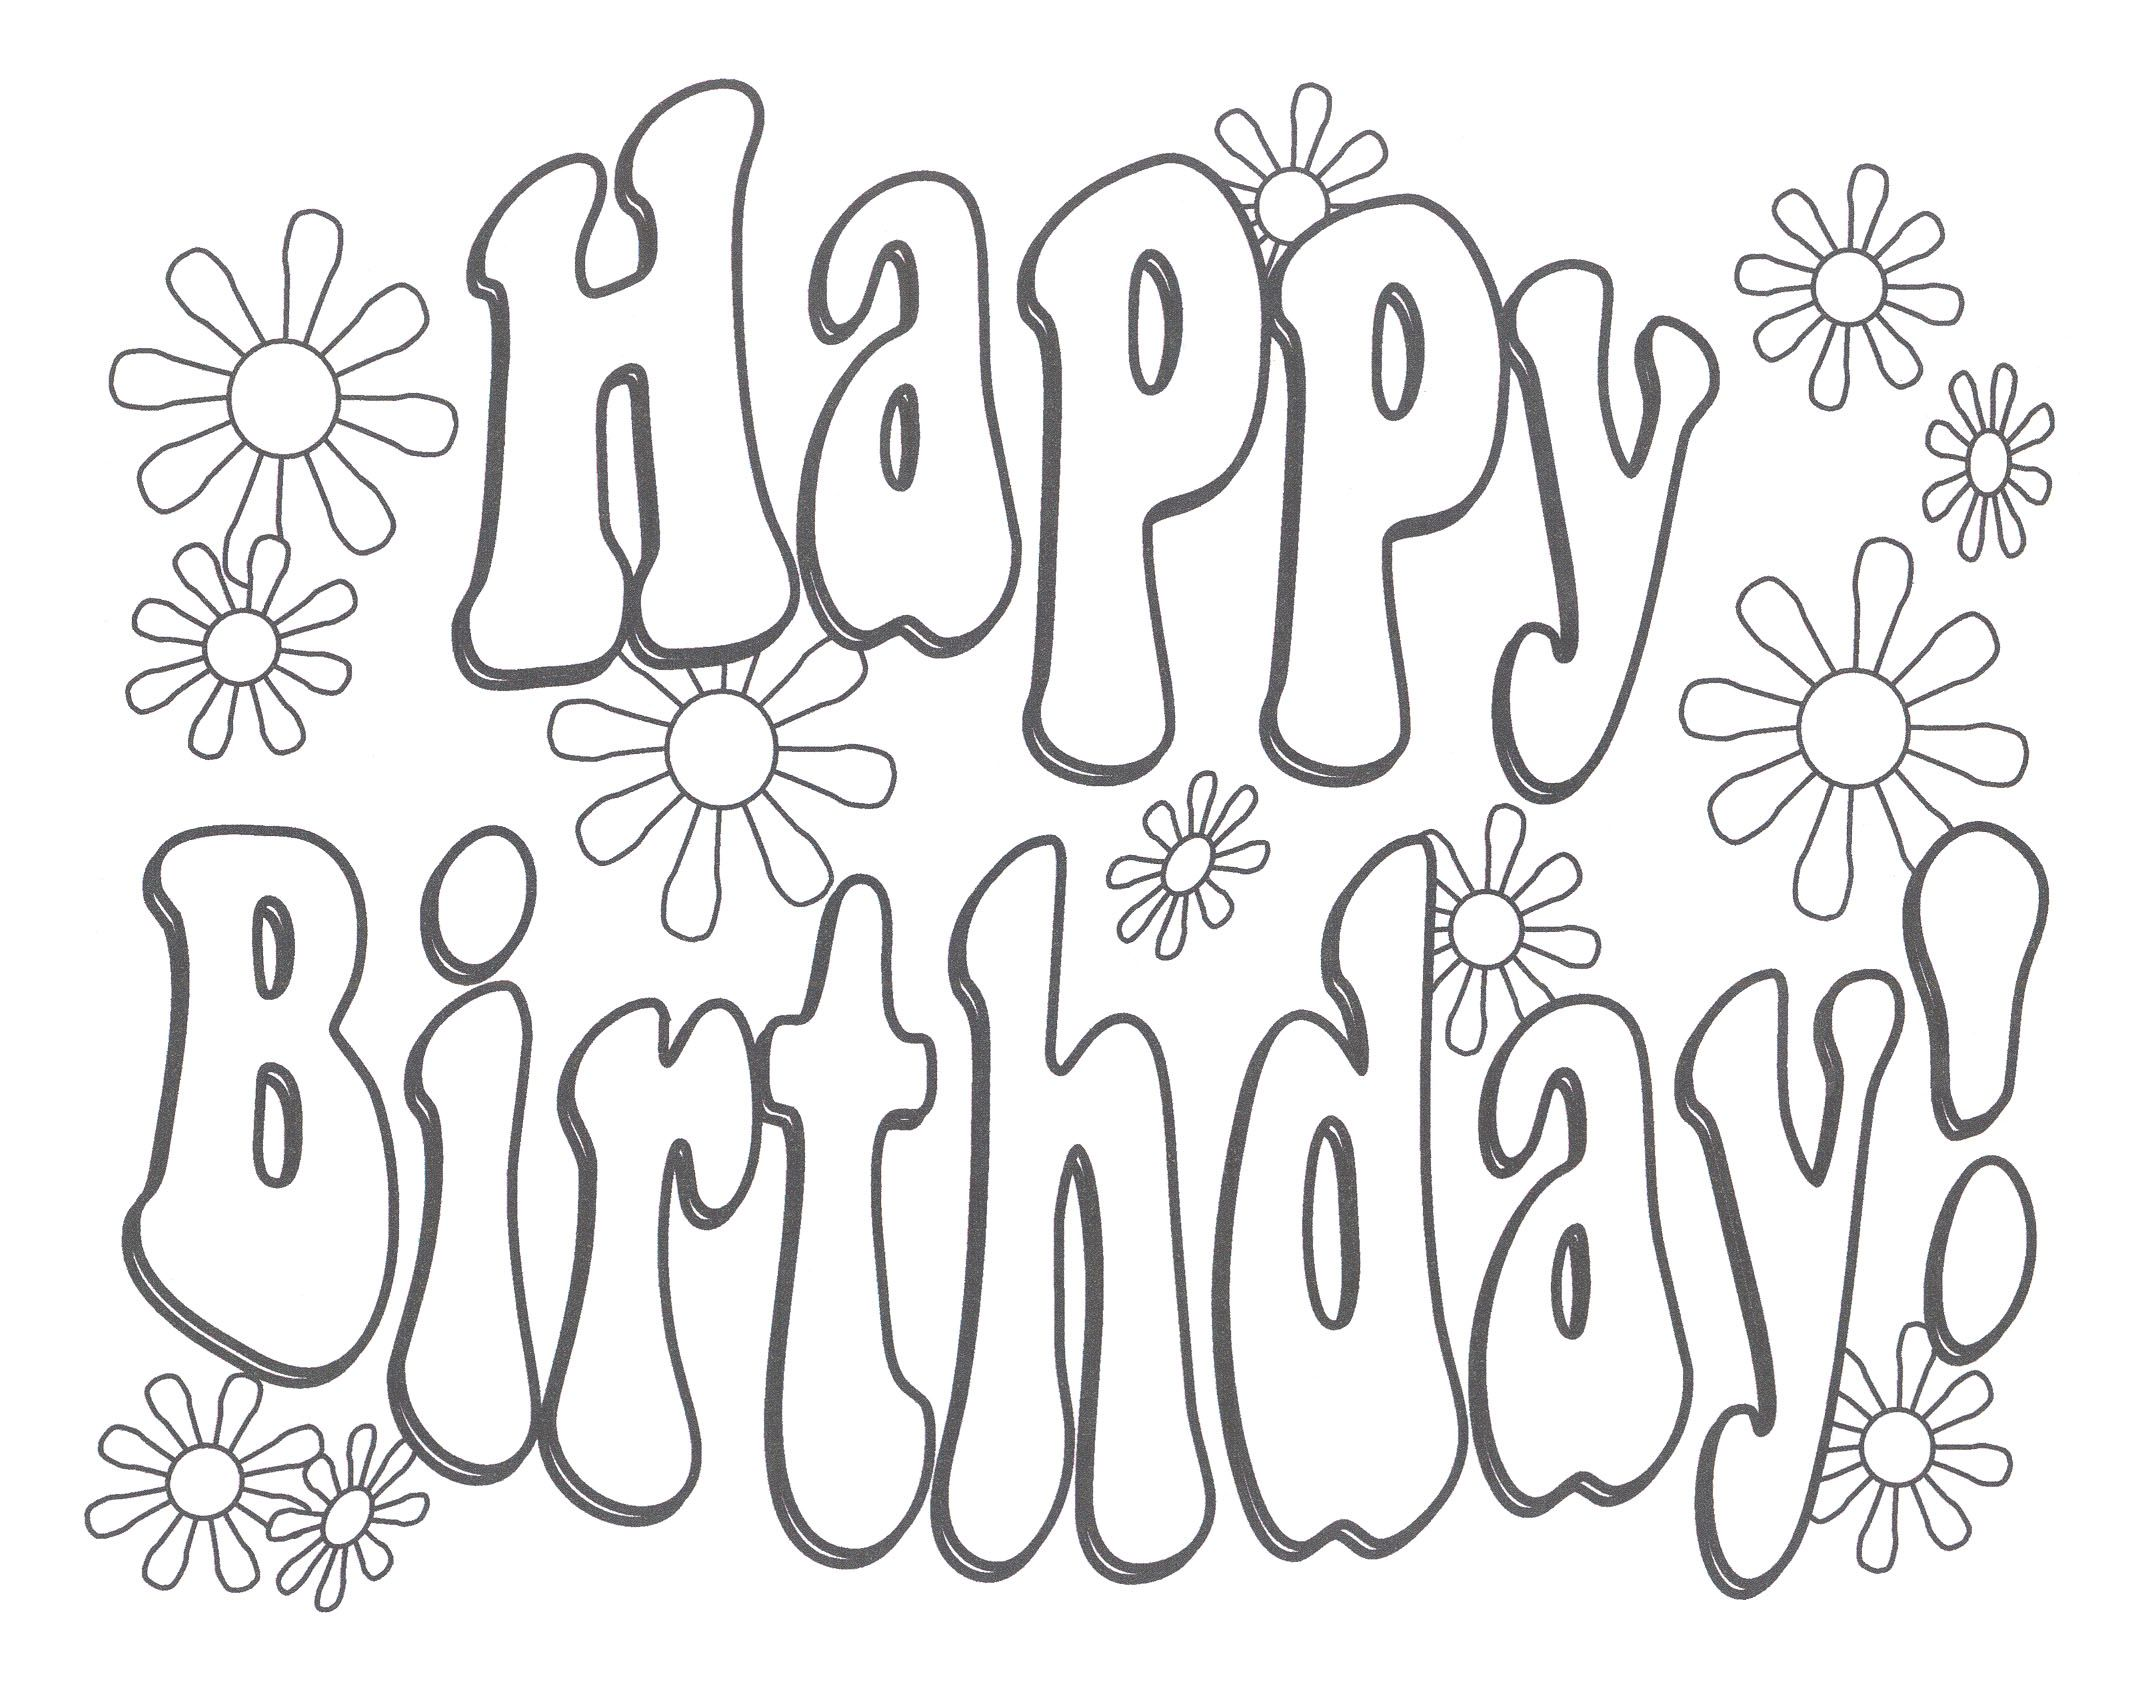 Happy Birthday Coloring Pages Happy Birthday Coloring Pages Birthday Coloring Pages Mom Coloring Pages